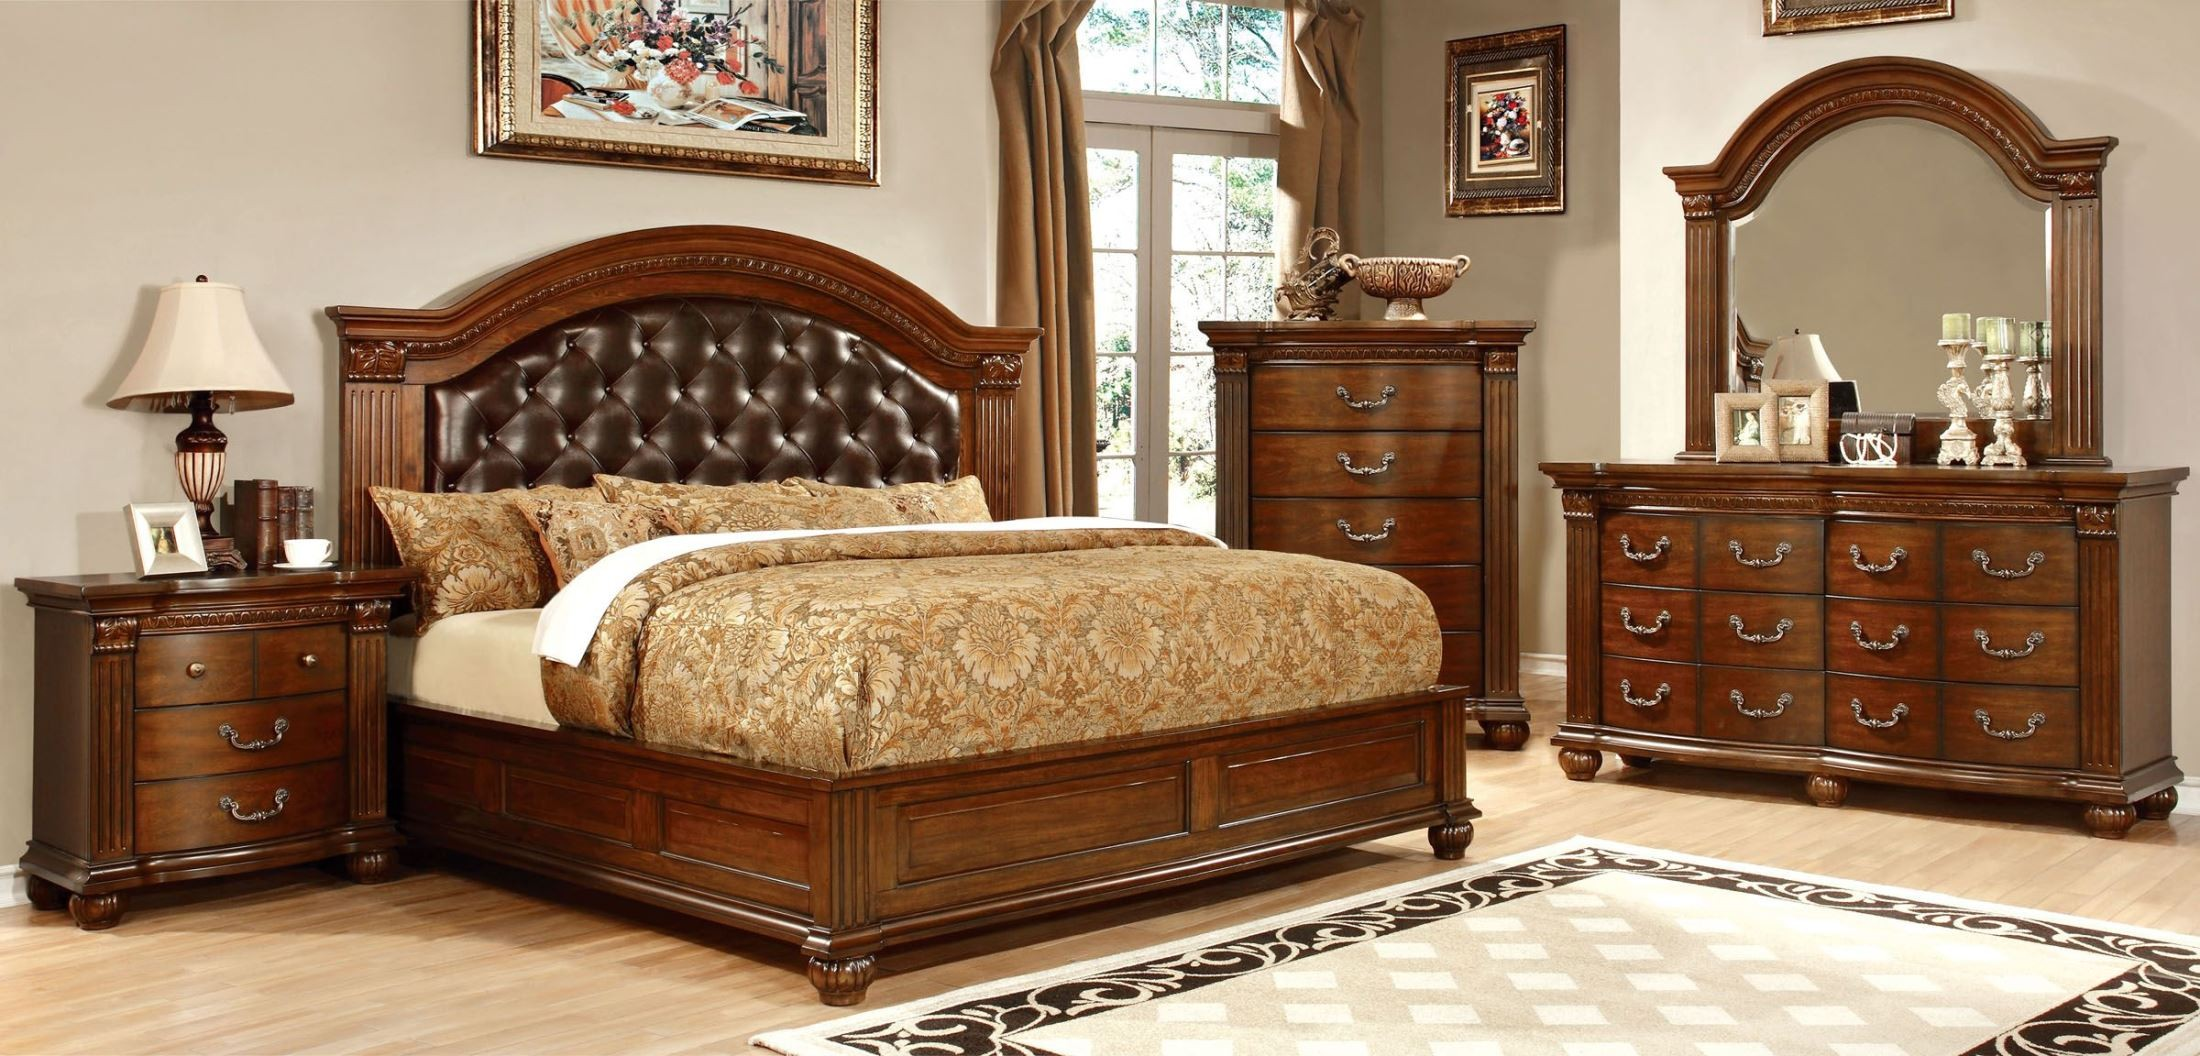 Grandom cherry leatherette bedroom set from furniture of america cm7735q bed coleman furniture for Bedroom furniture washington dc